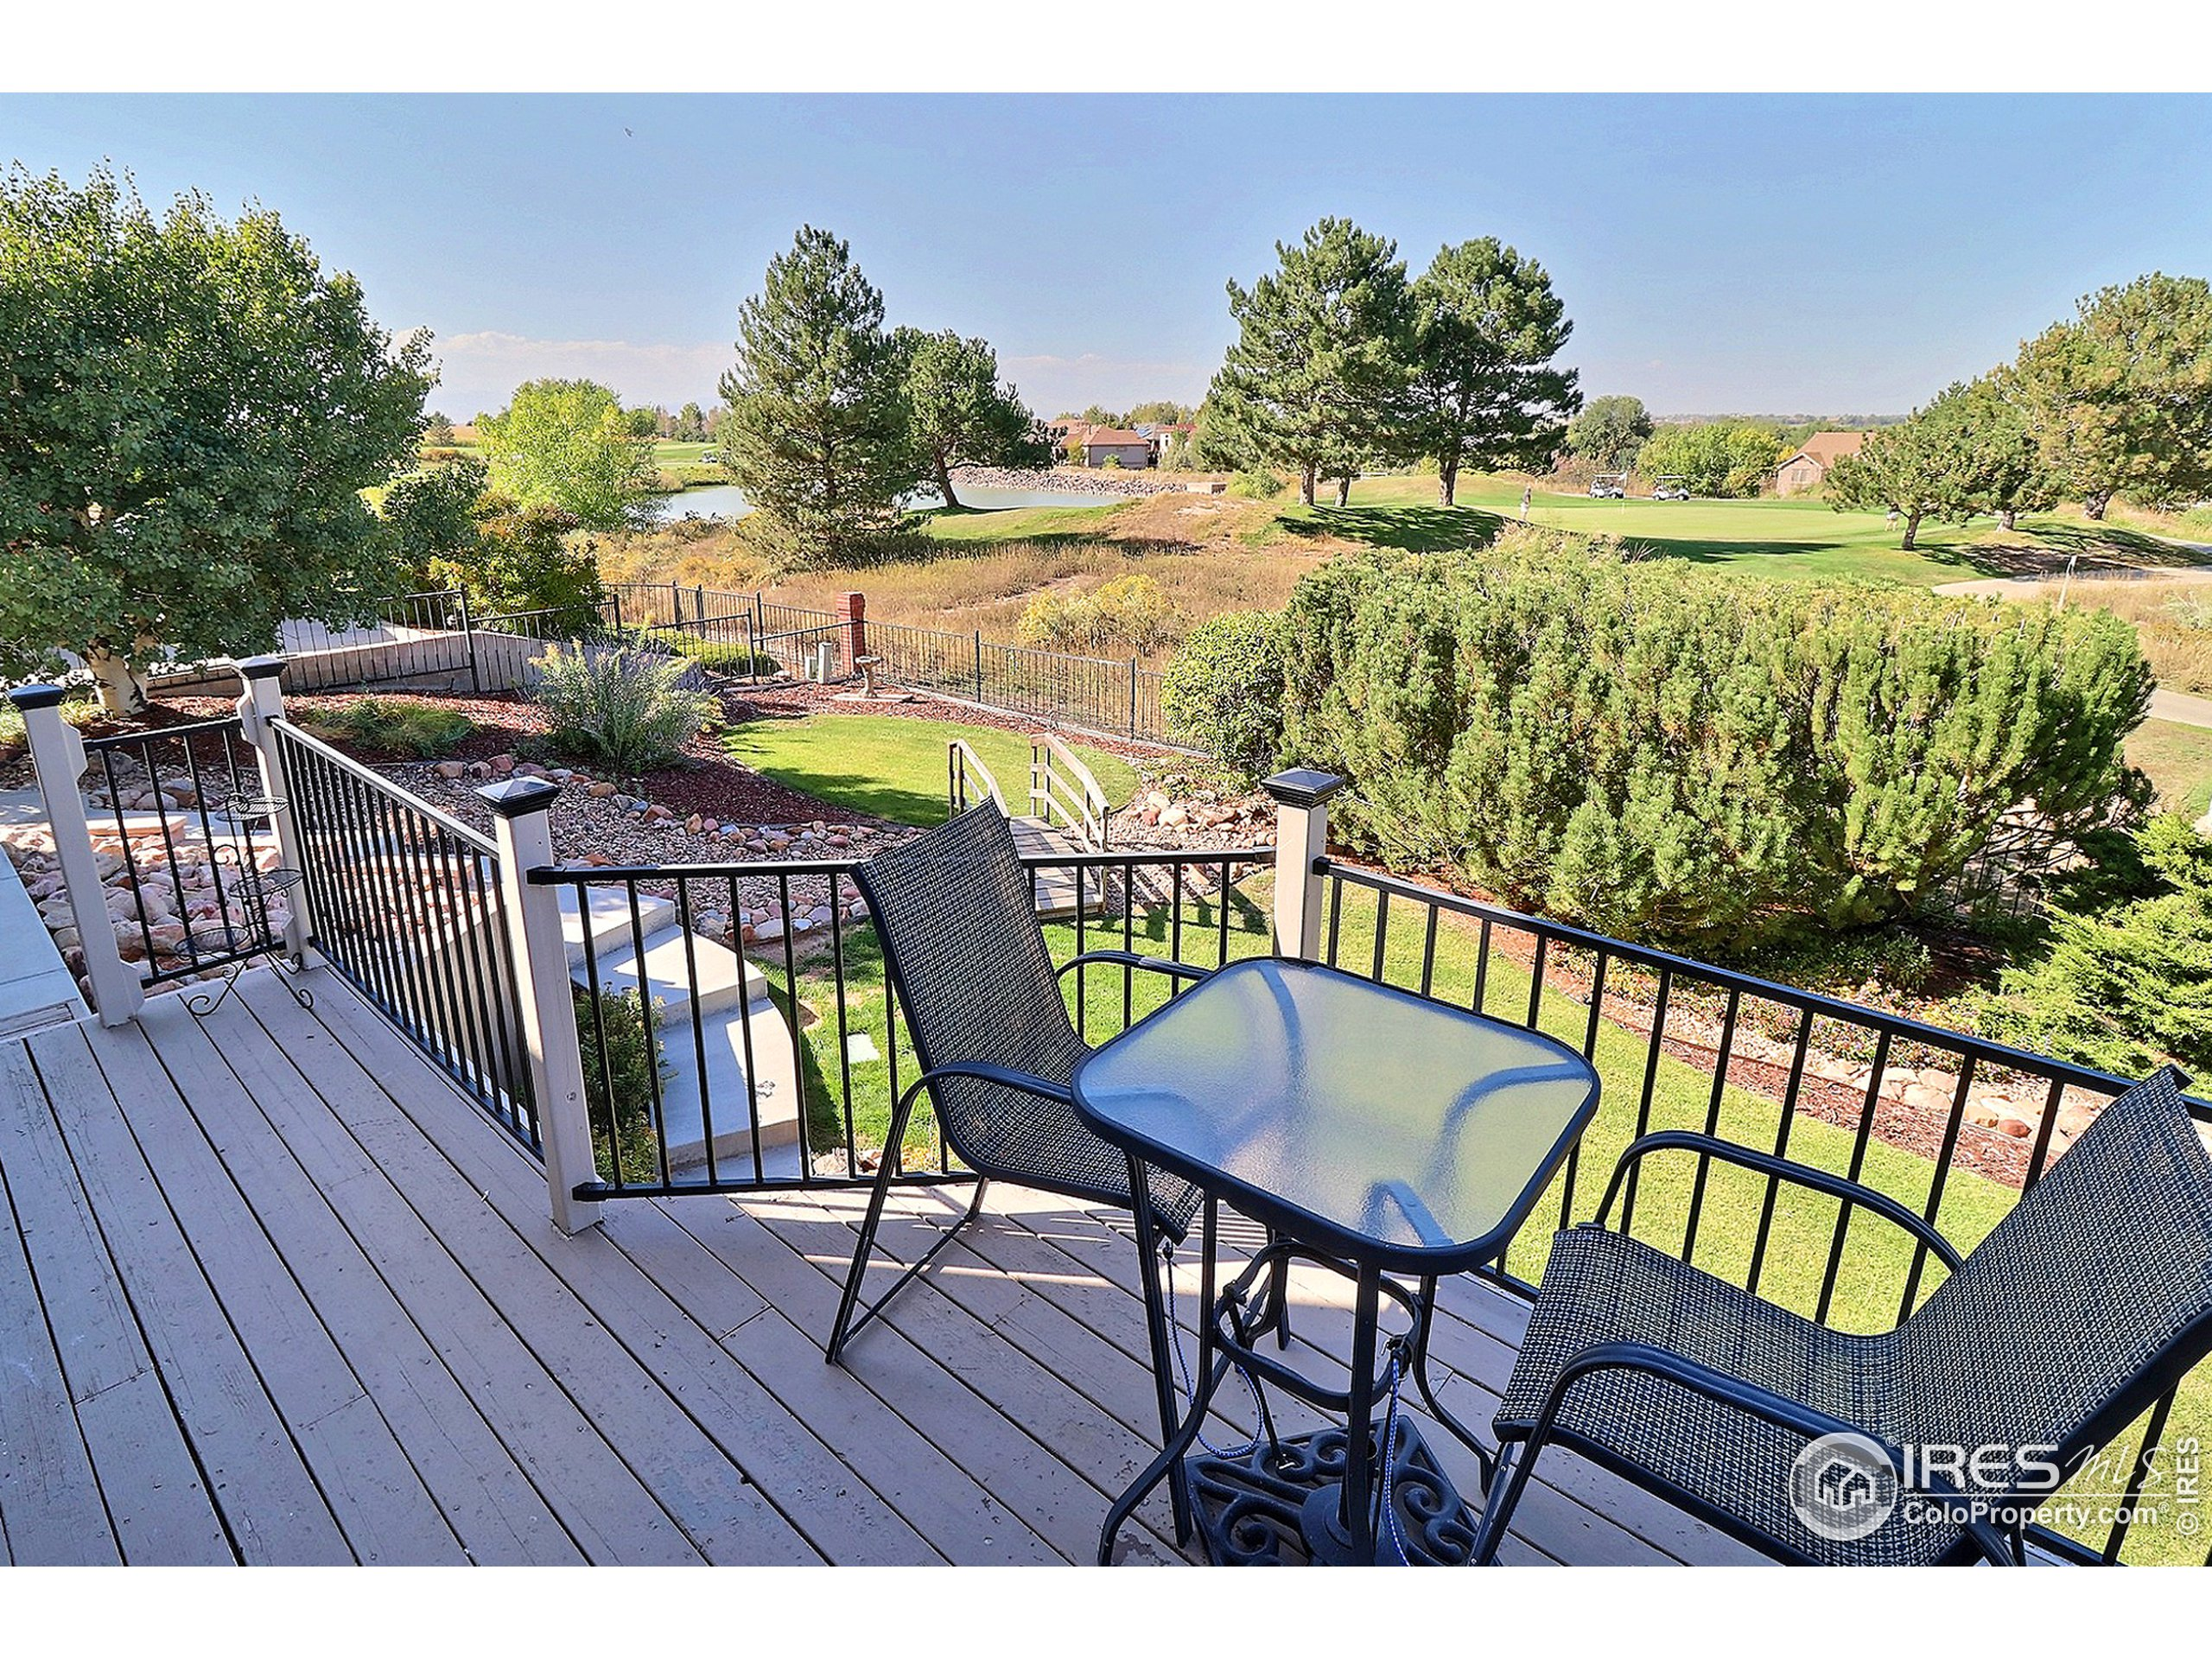 Sit on Your Deck and Enjoy Watching the Golfers